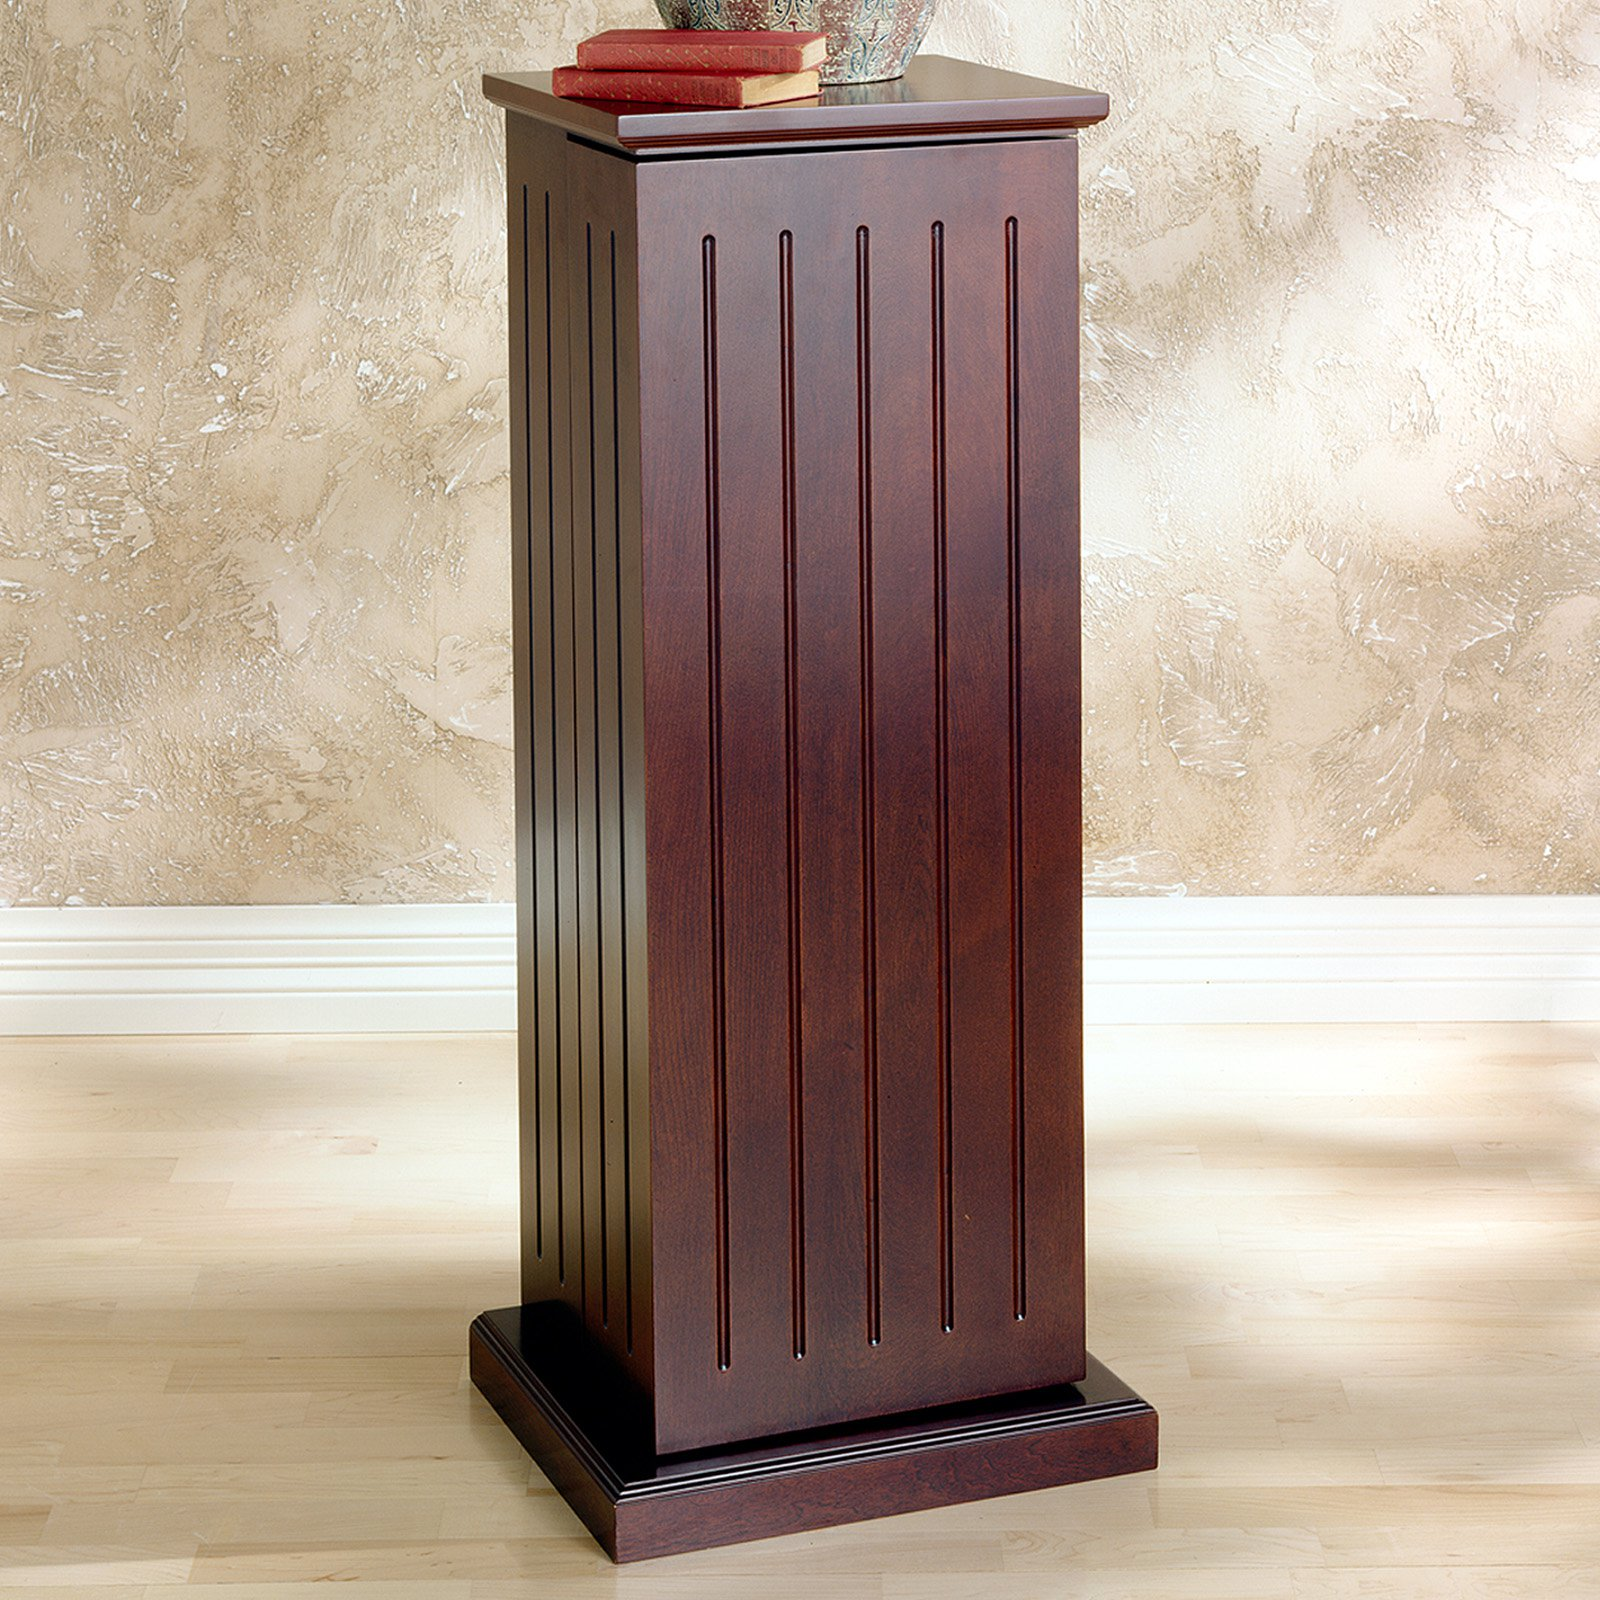 Media Storage Pedestal Dark Cherry Adjustable Shelves Hidden Storage